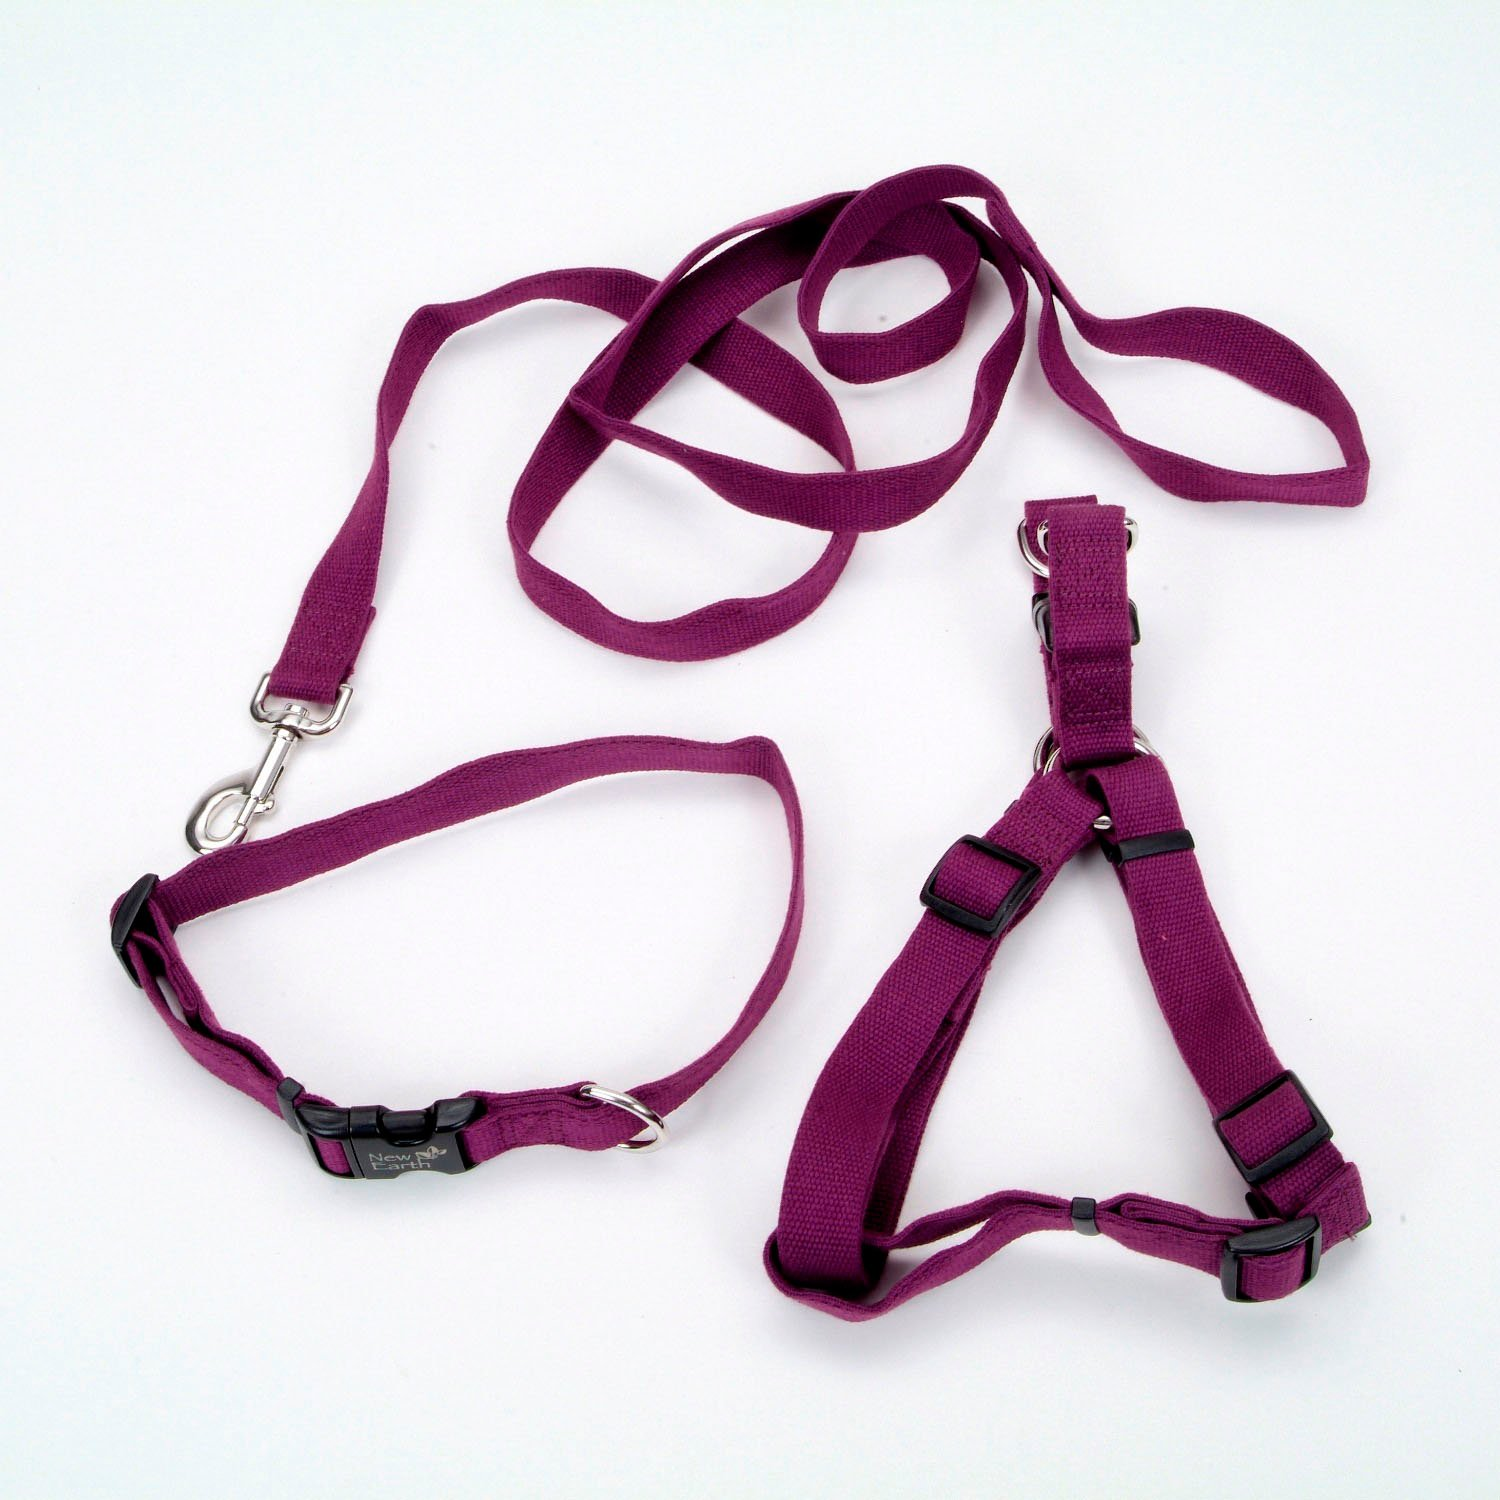 Coastal Pet New Earth 3-Piece Soy Dog Leash Harness and Collar Bundle in Purple